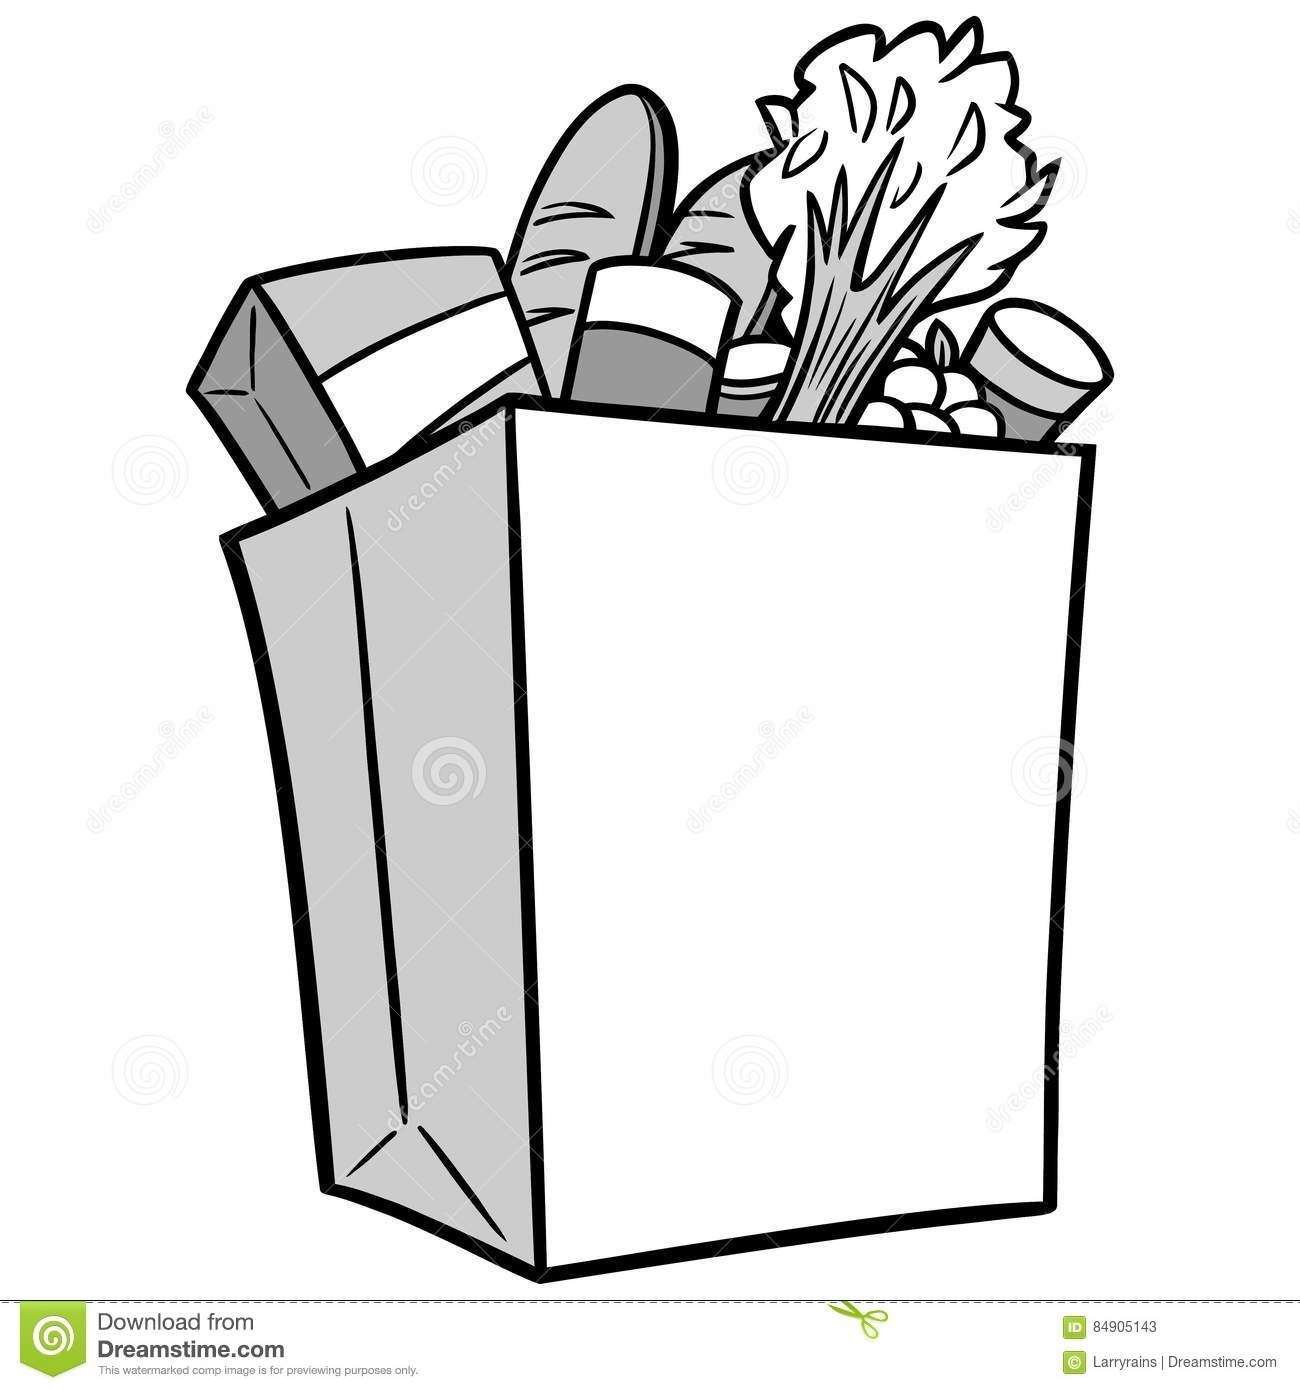 158 Grocery Bag free clipart.